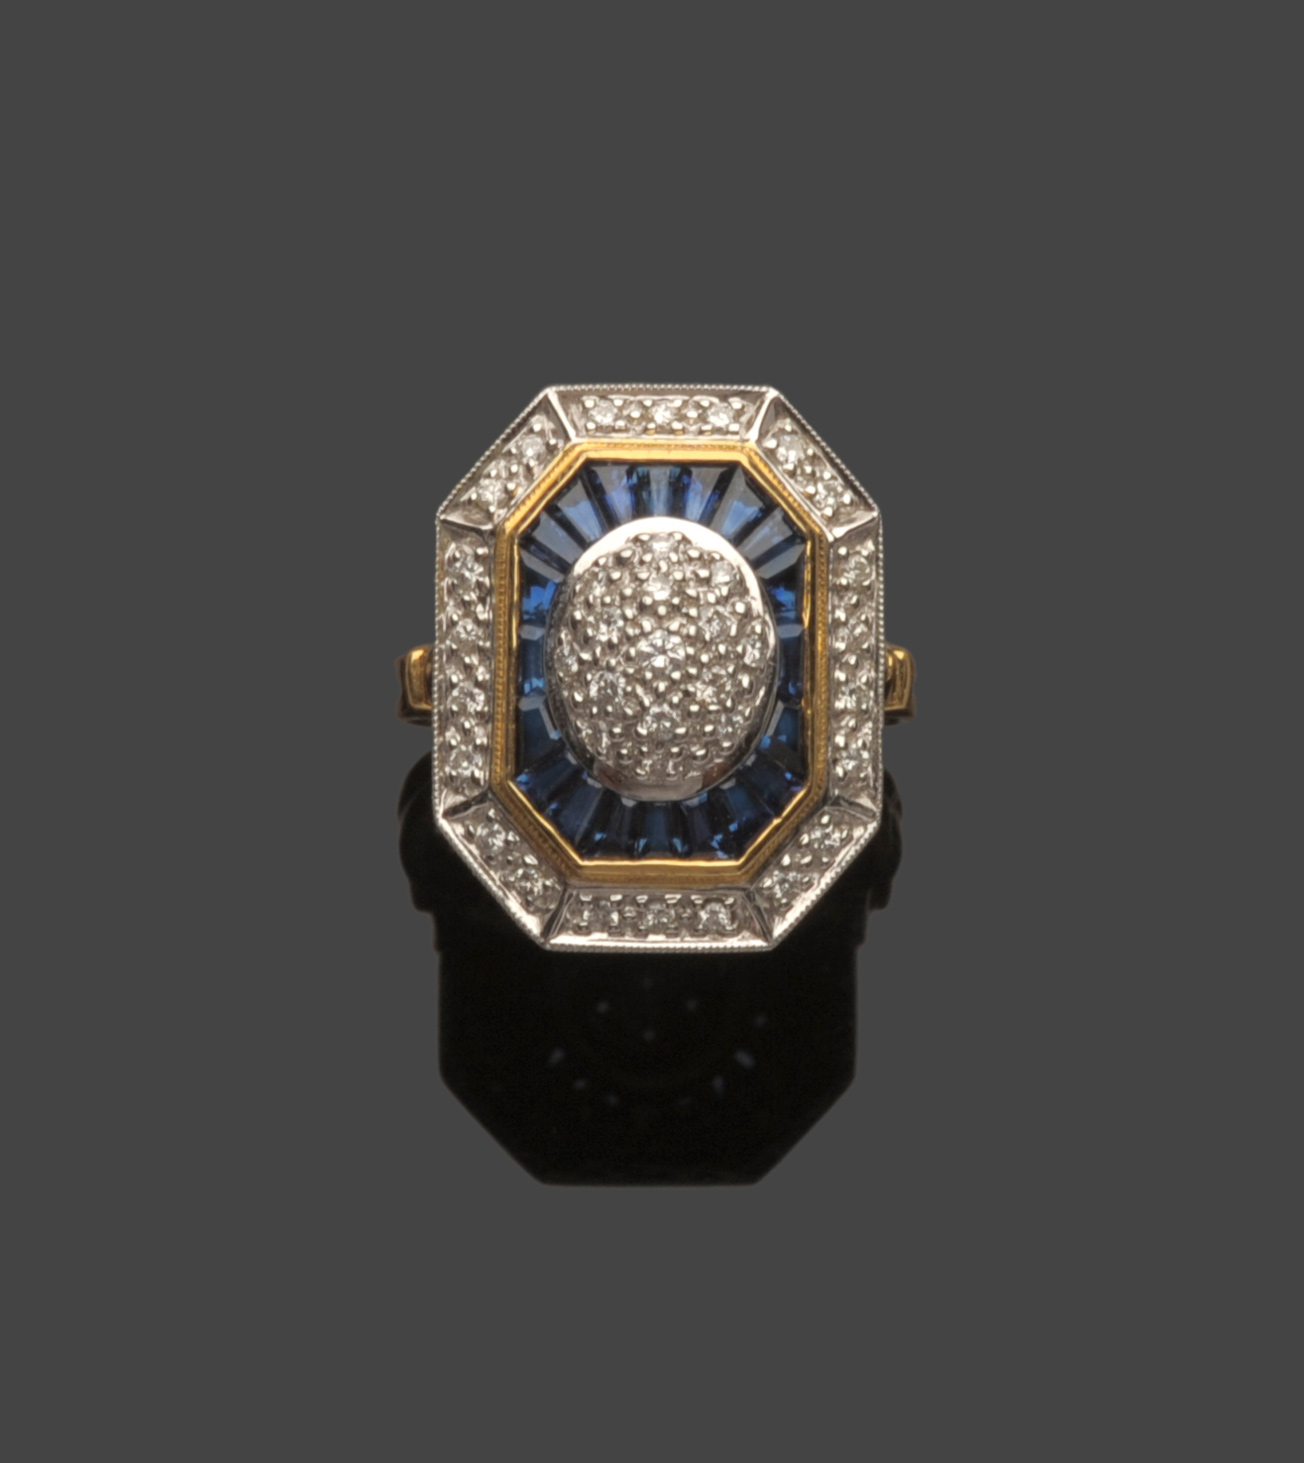 Tennants Auctioneers: An 18 Carat Gold Art Deco Style Diamond and Sapphire Cluster Ring